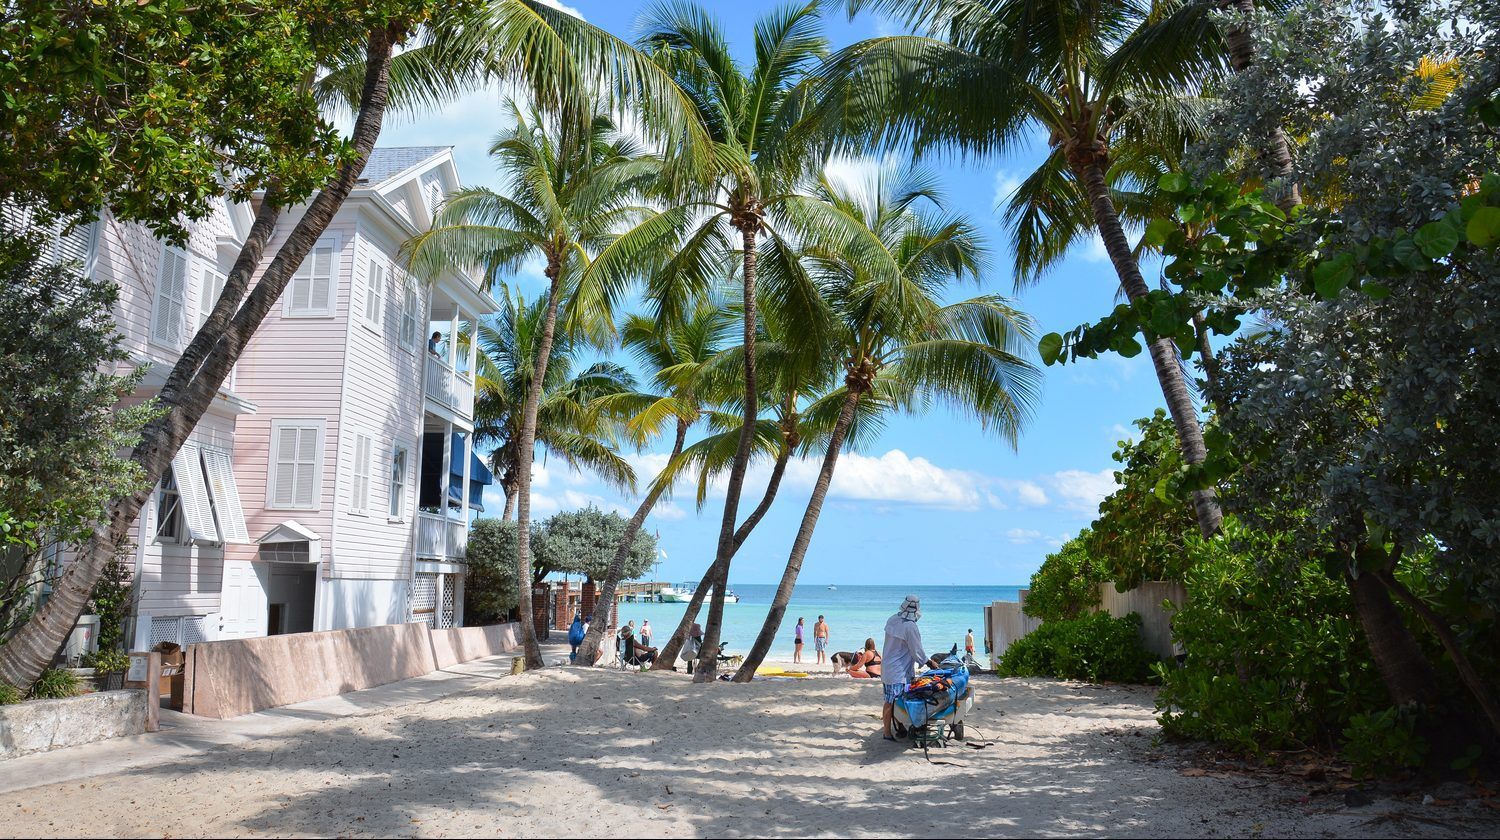 Beach at Key West